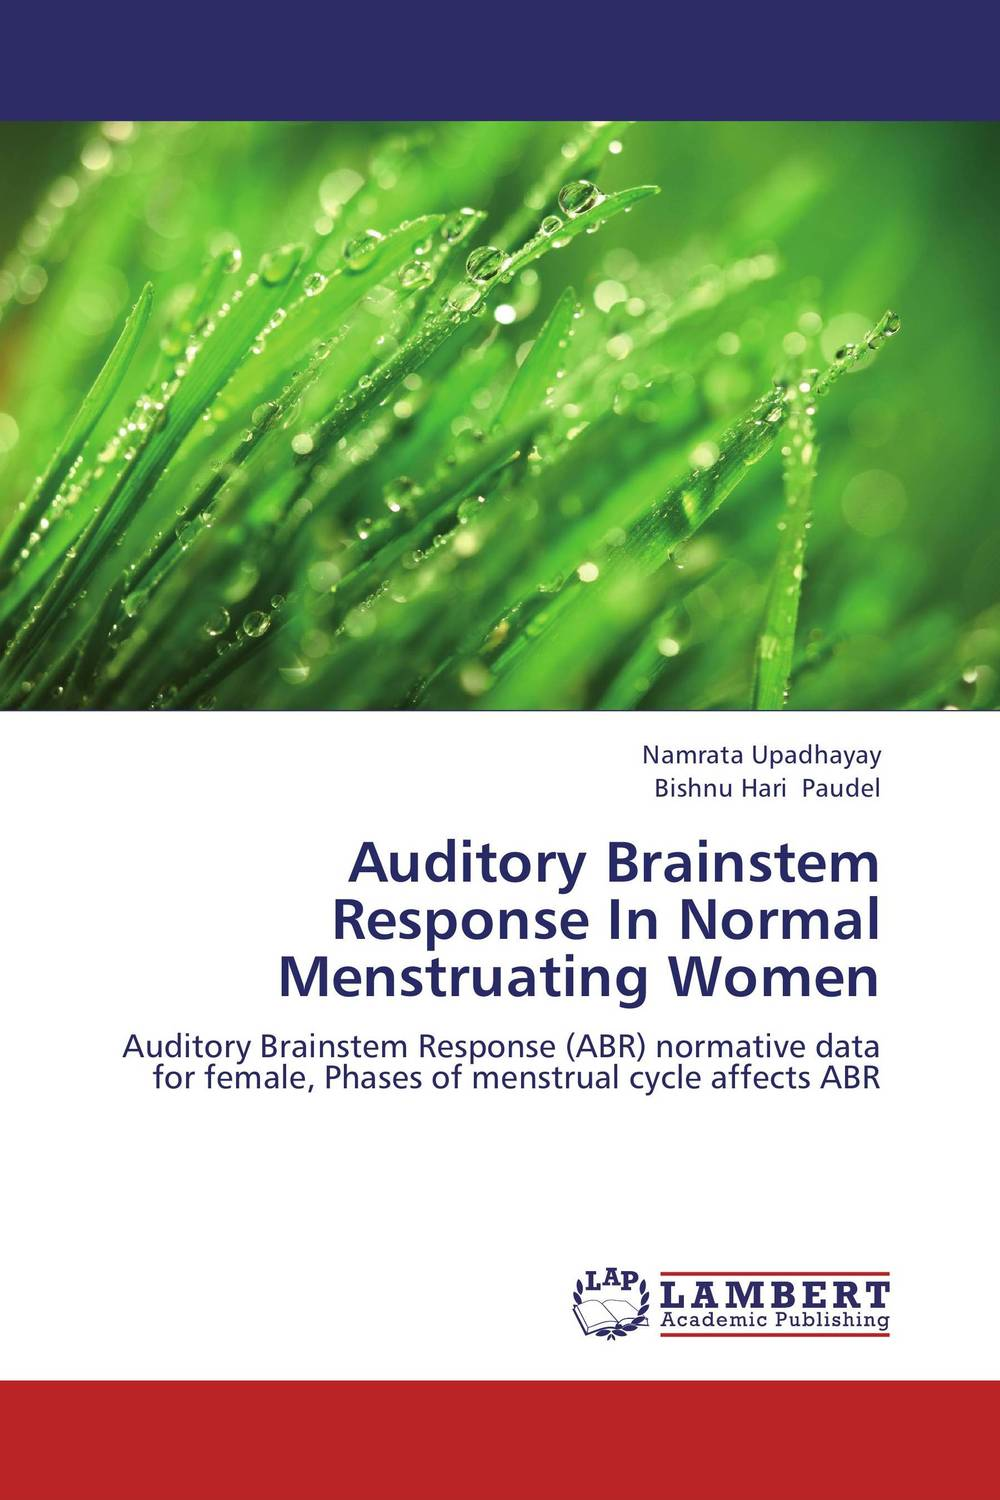 Auditory Brainstem Response In Normal Menstruating Women vishnu gupta modulation of ovarian functions and fertility response using insulin